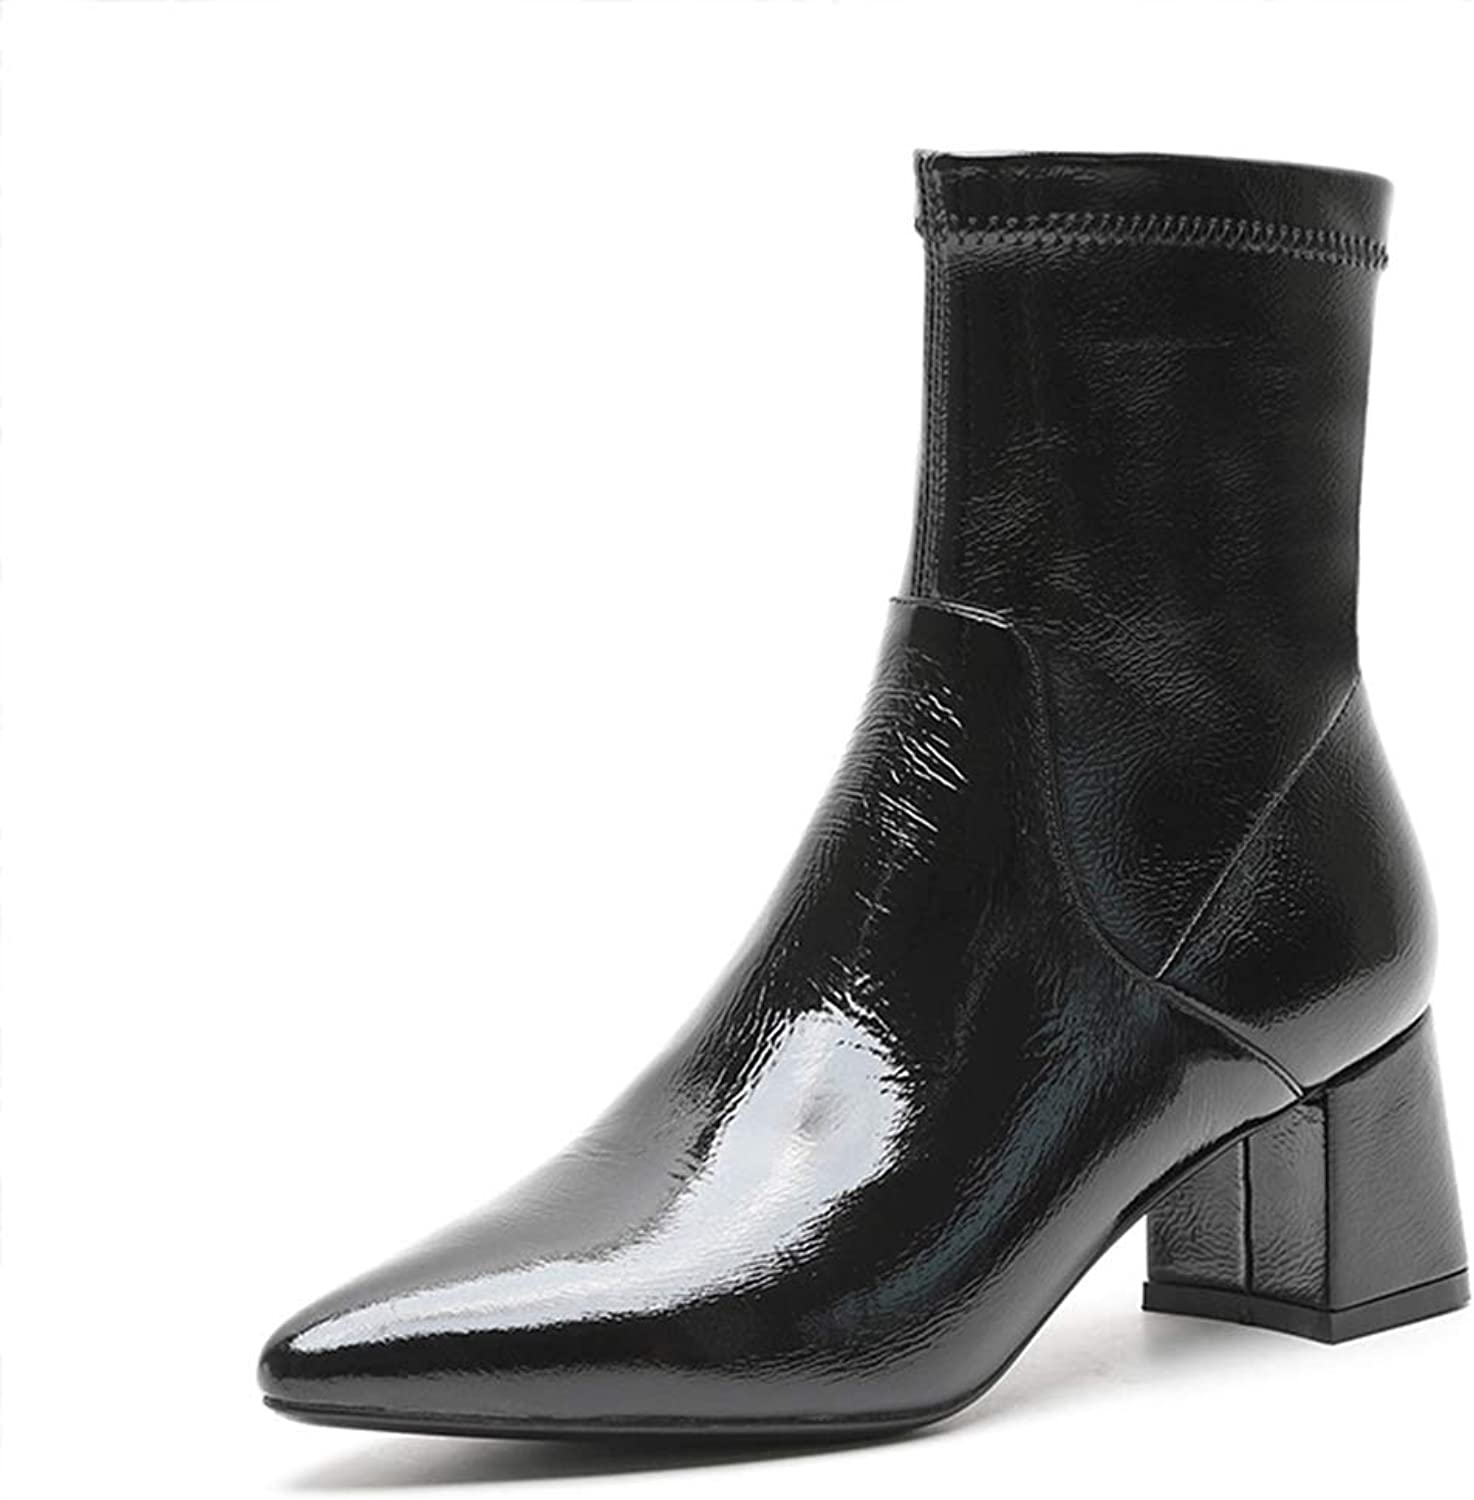 Women's Booties, Mid Tube Small Heel Martin Boots Ladies Fall Winter New Leather Wild Microfiber Fashion Boots (color   Black, Size   38)